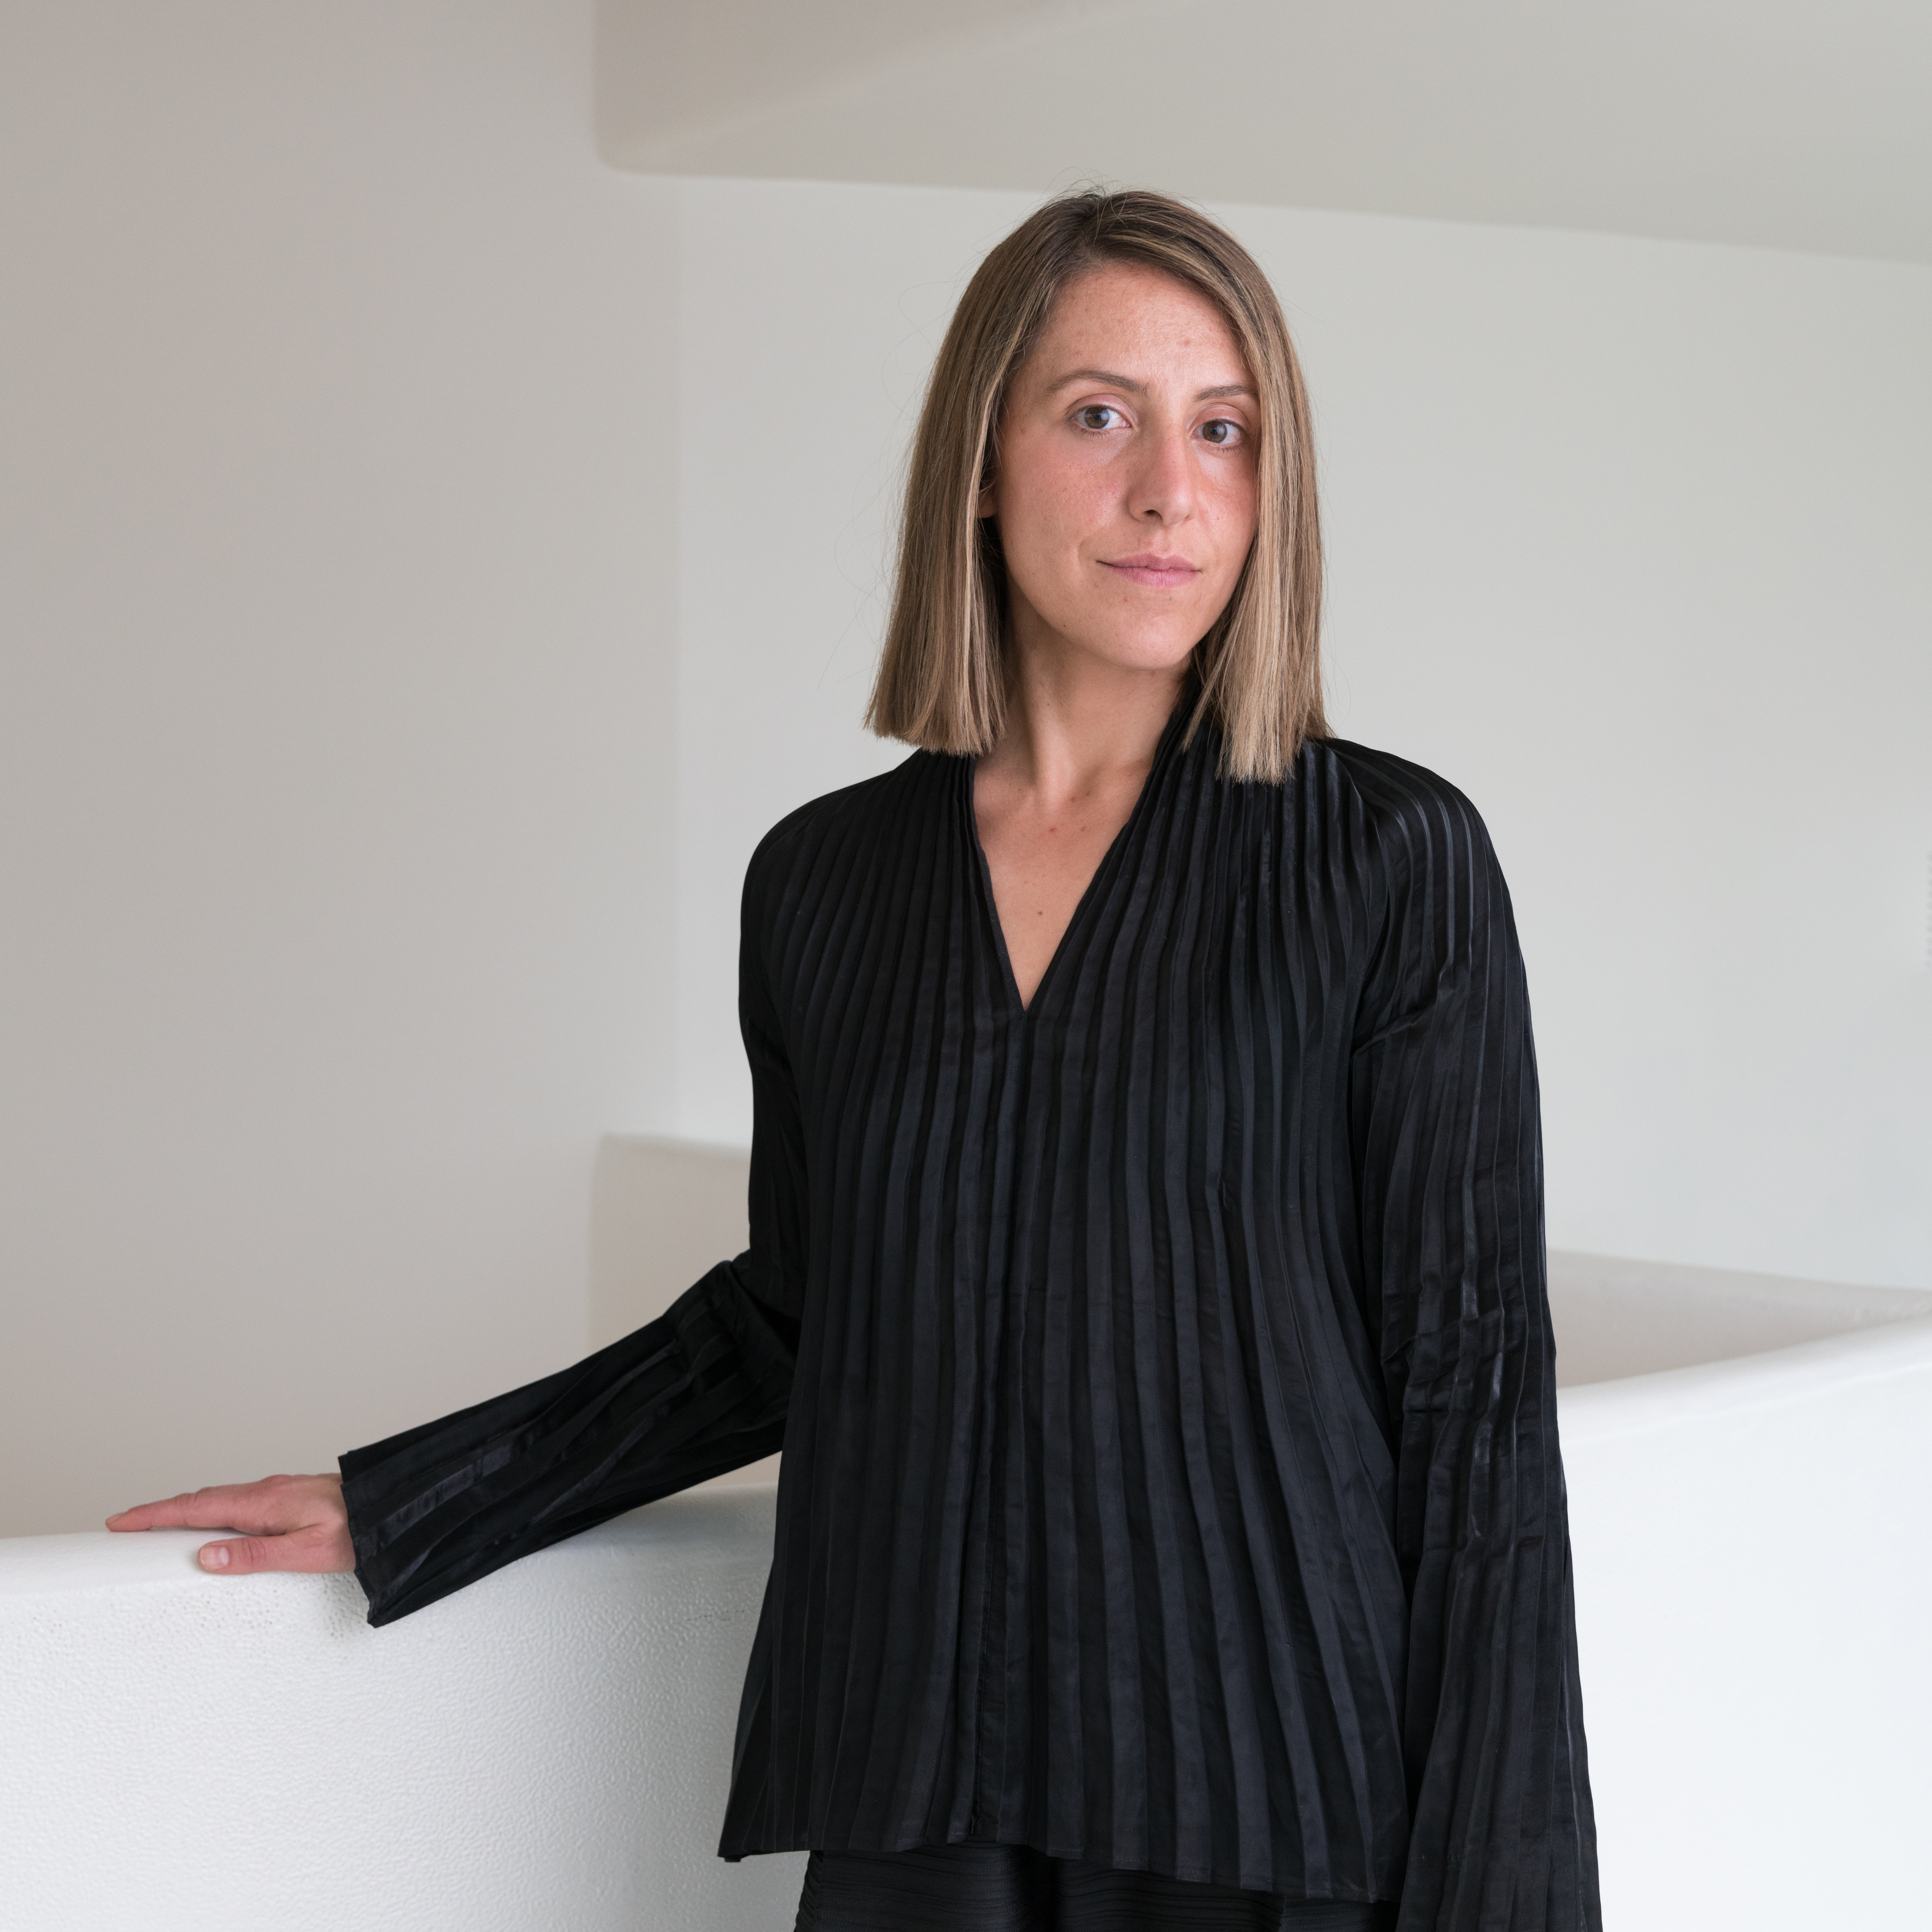 Amara Antilla. Photo: David Heald/the Solomon R. Guggenheim Foundation, New York.